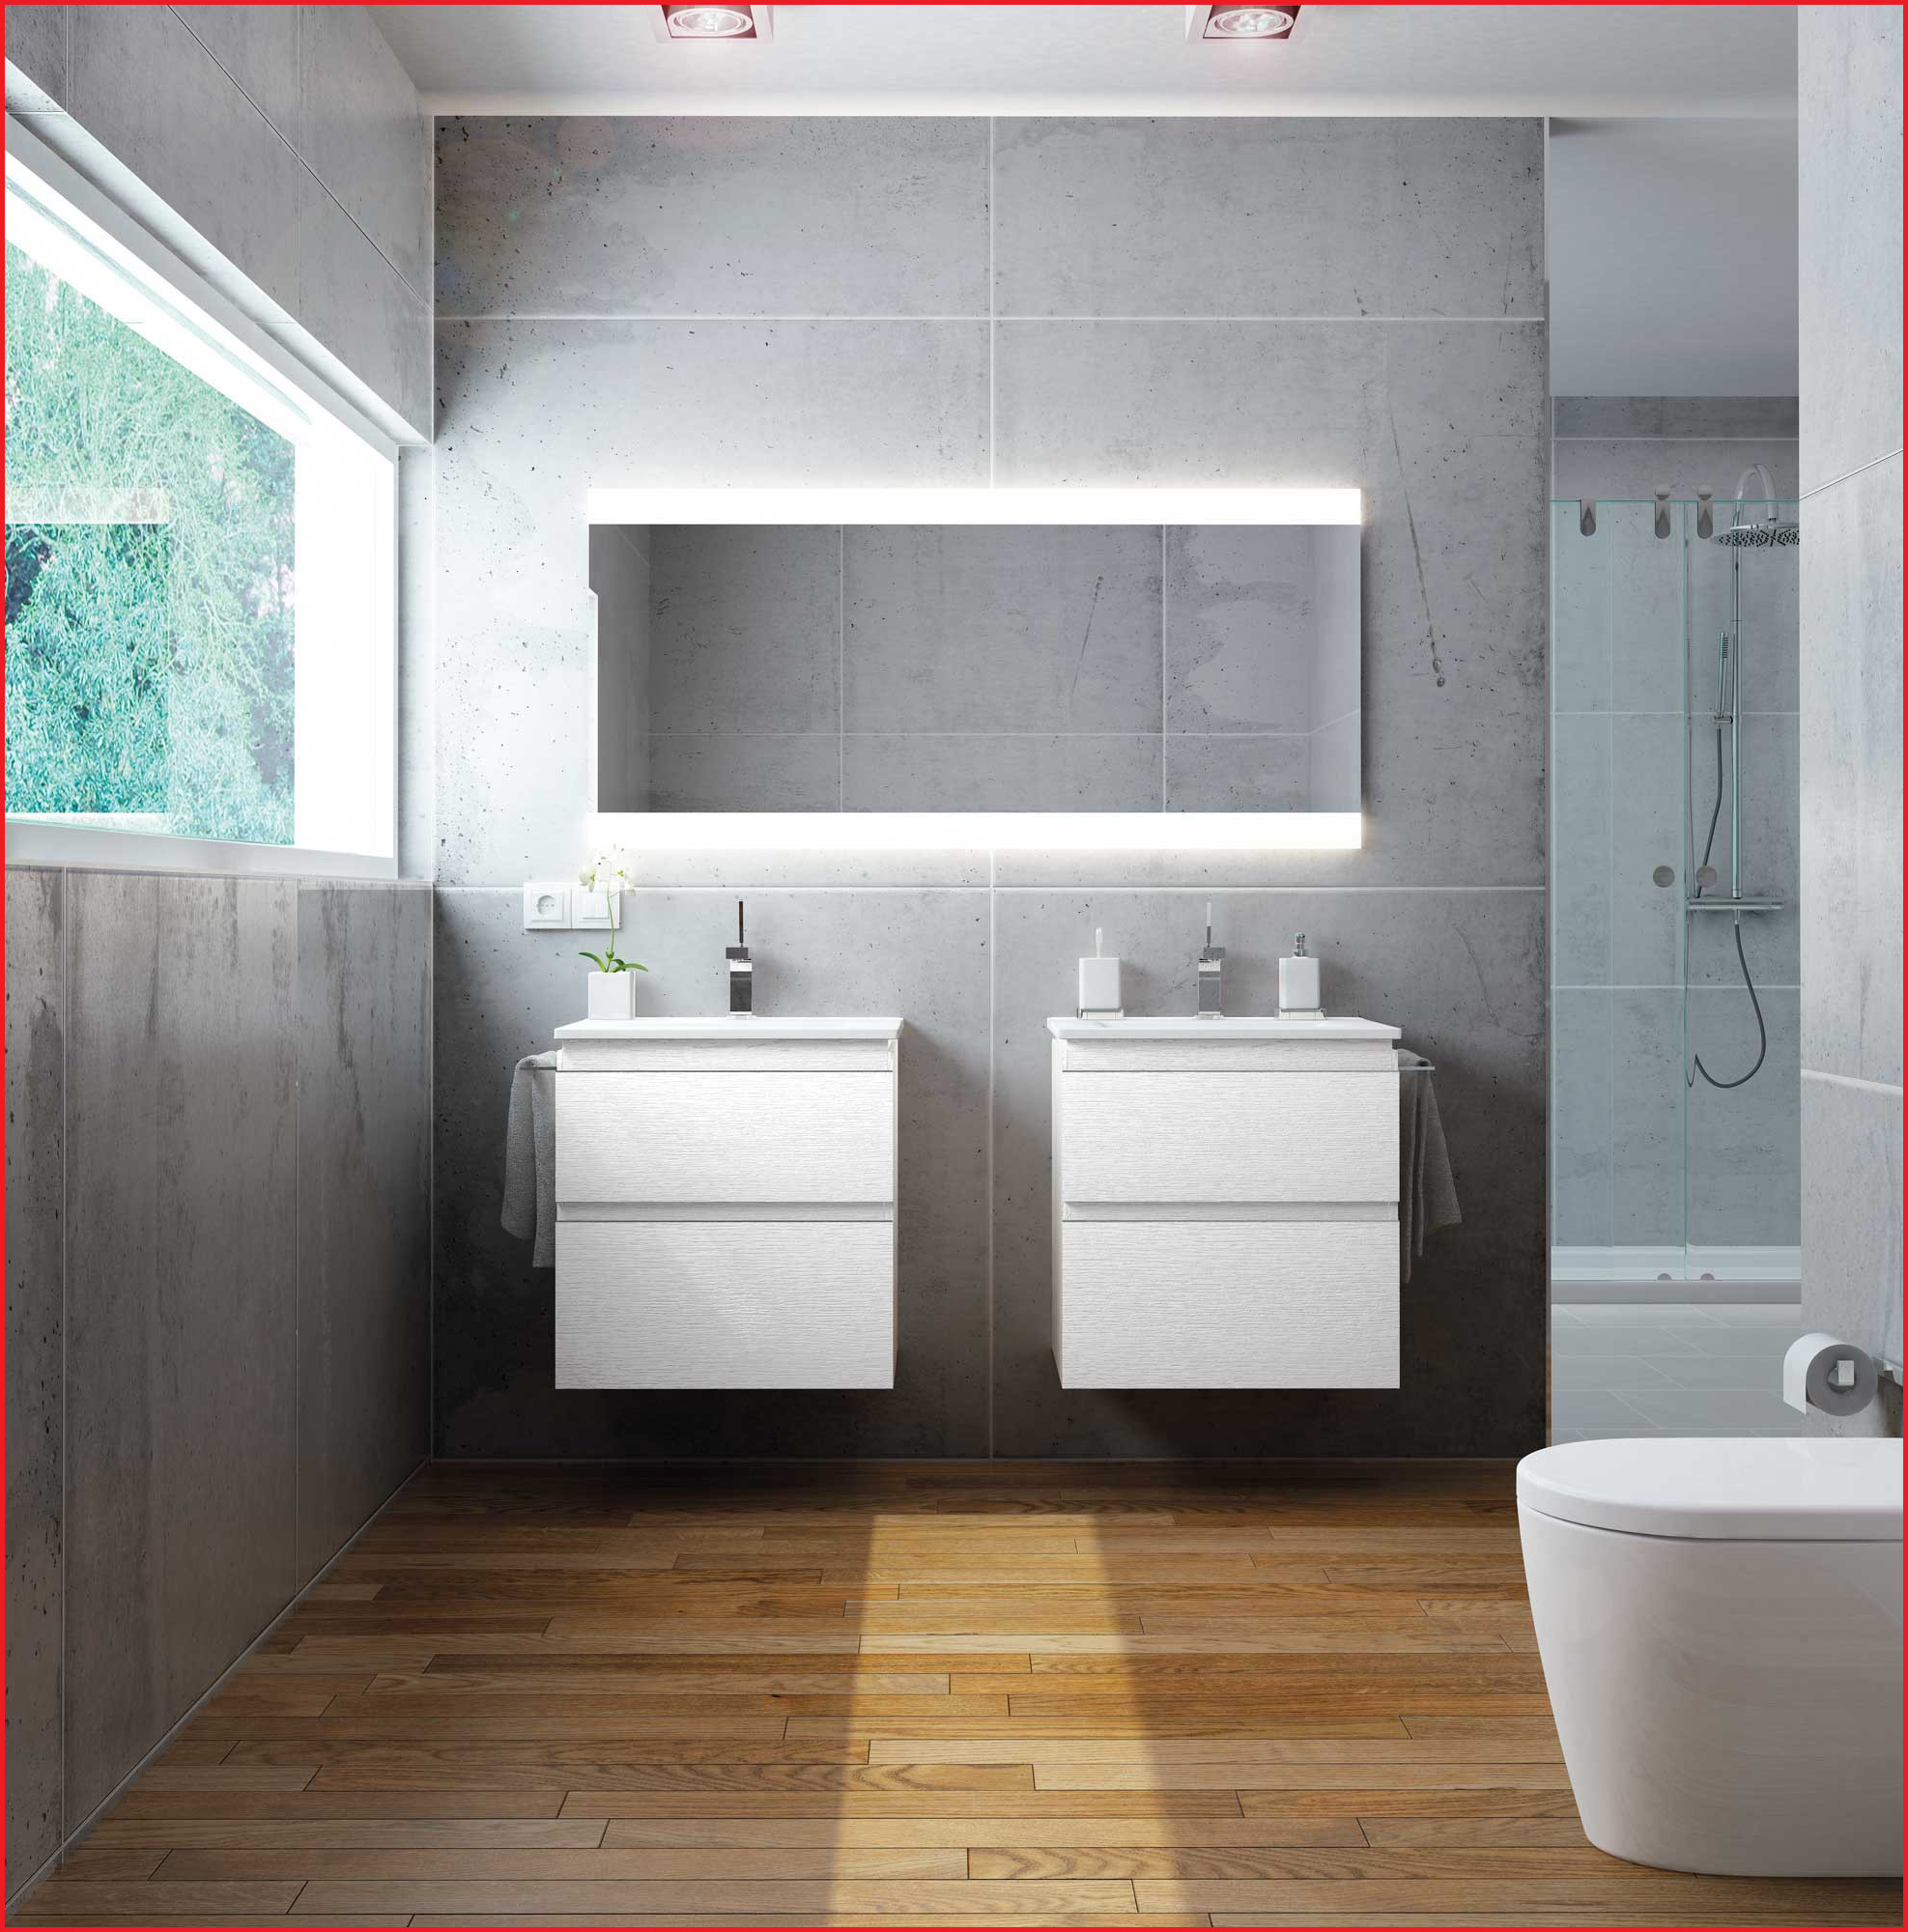 Muebles De Baño Online Outlet S5d8 Blanche Thomas Author at Arsenalsupremo Page 55 Of 947